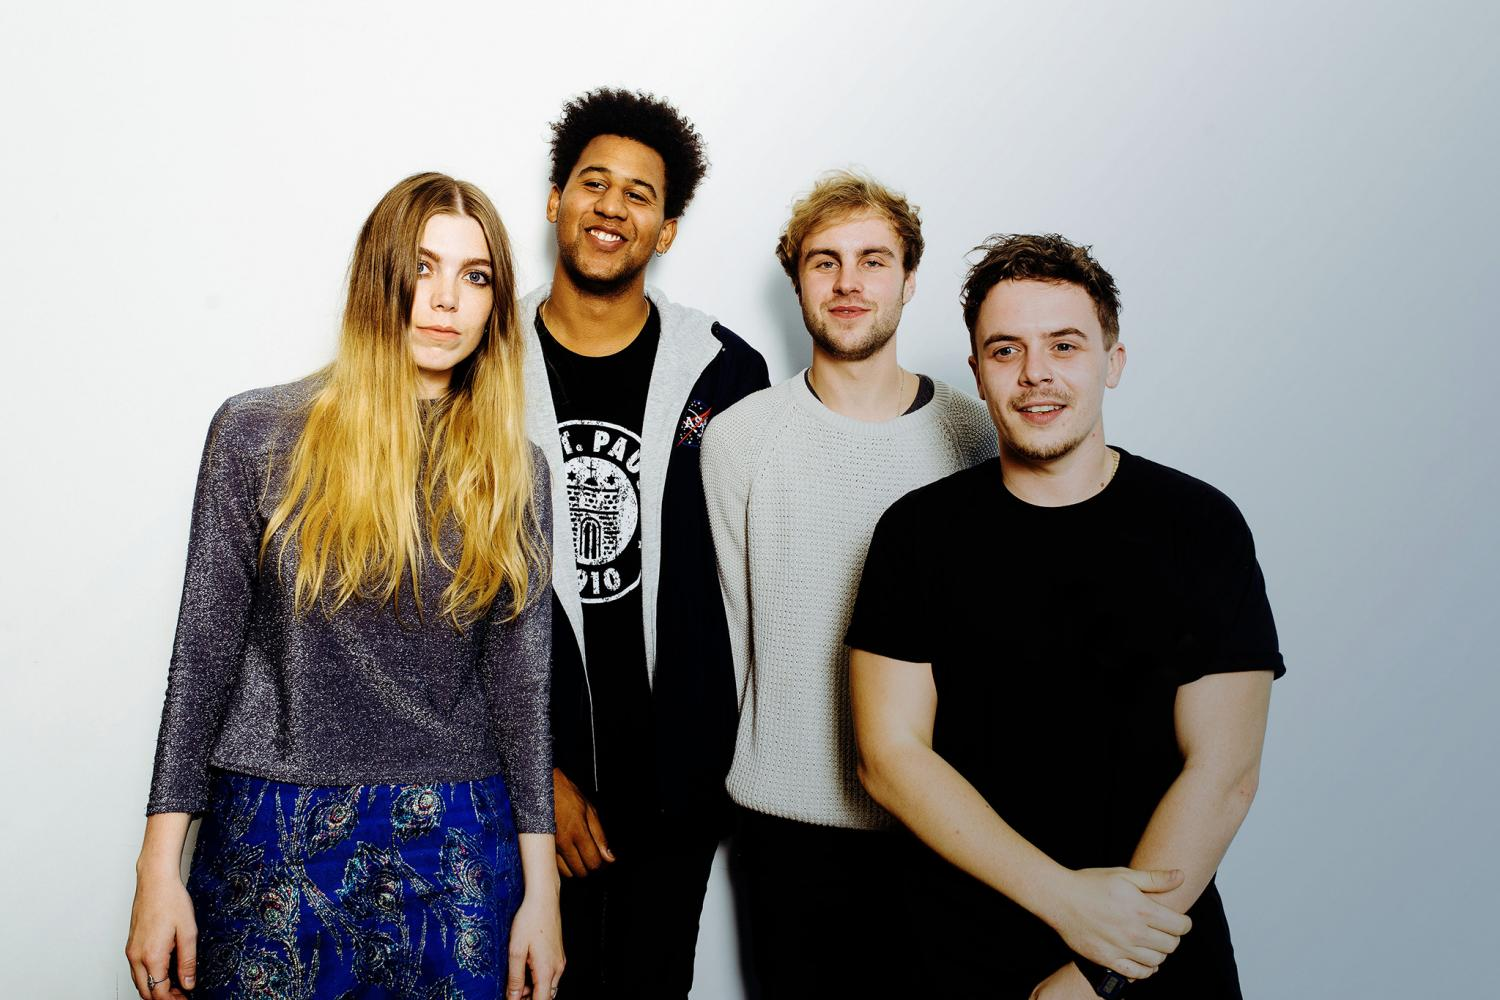 Louise Taylor Interviews Superfood for BURST Radio